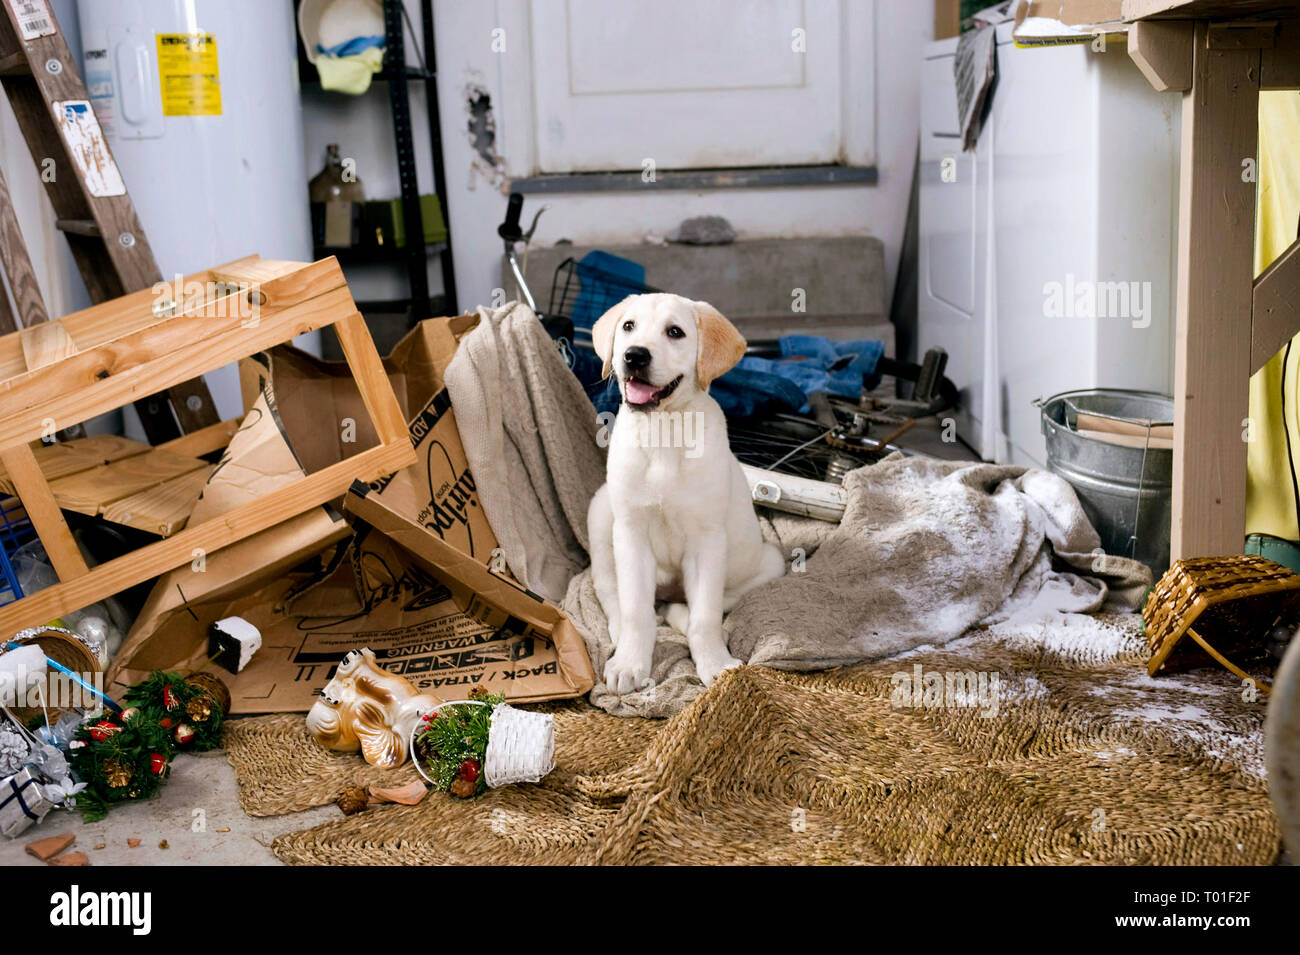 Marley Marley And Me 2008 Stock Photo Alamy